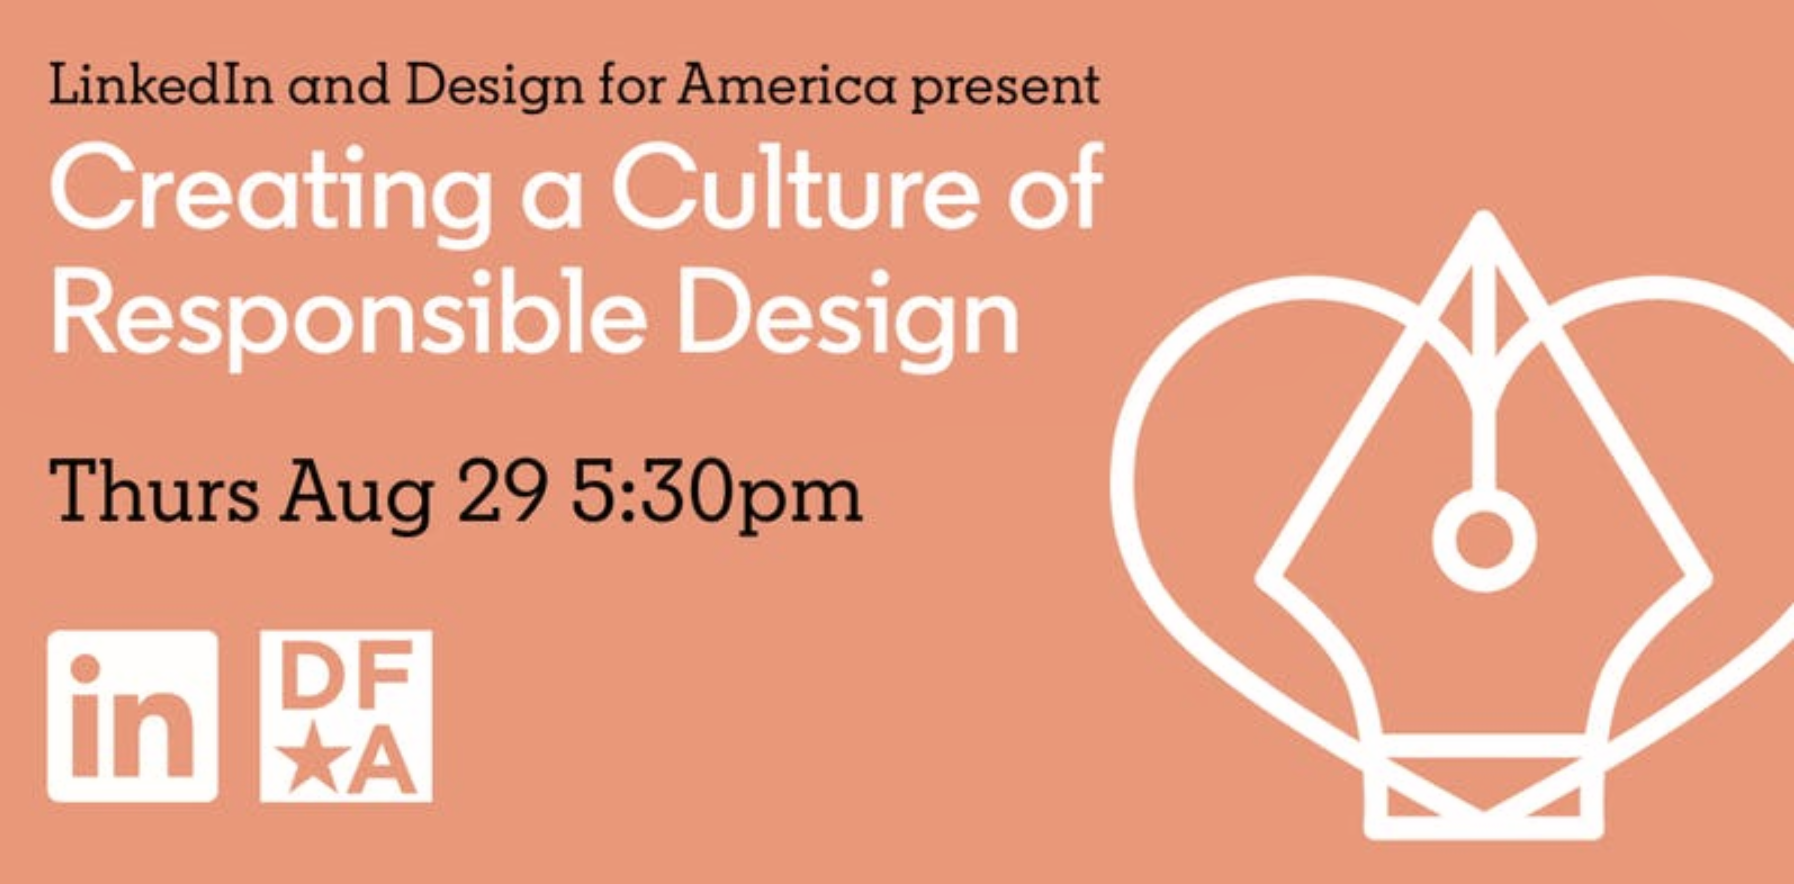 Creating a Culture of Responsible Design - by LinkedIn and Design for AmericaREGISTER HERE